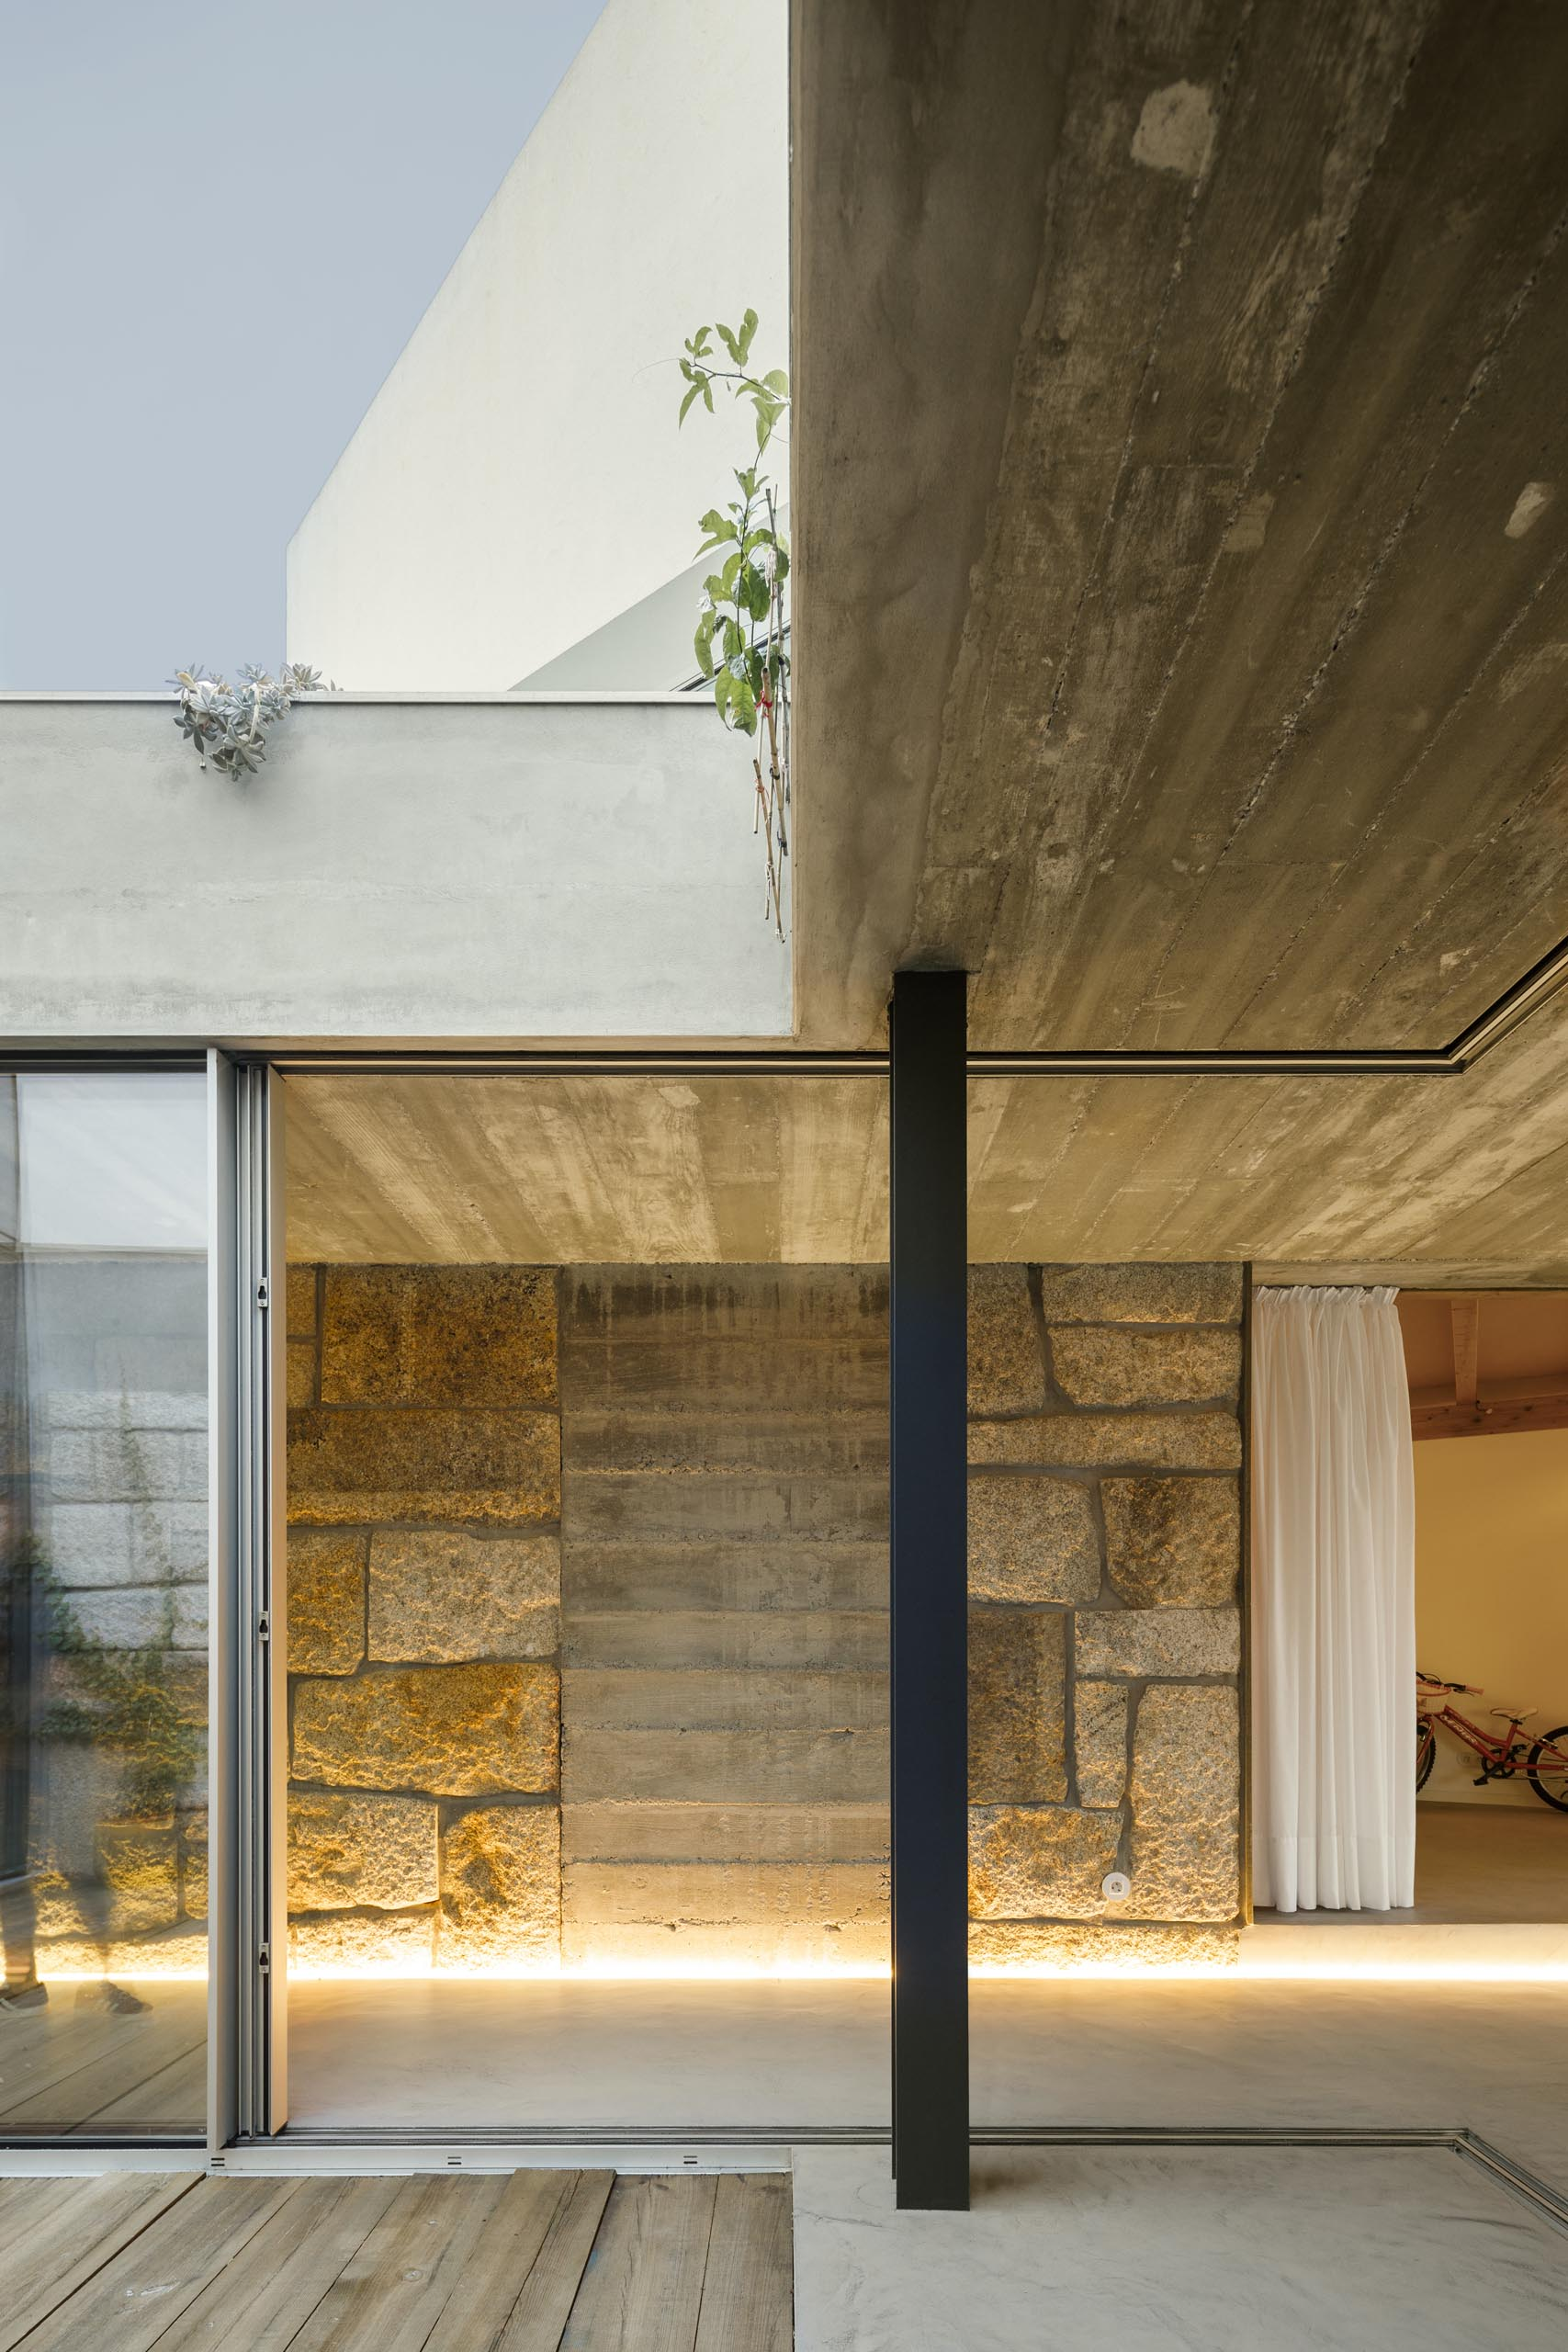 By using illuminated LED strips, the stone, concrete, and wood walls throughout this modern home are able to be showcased in a subtle way.